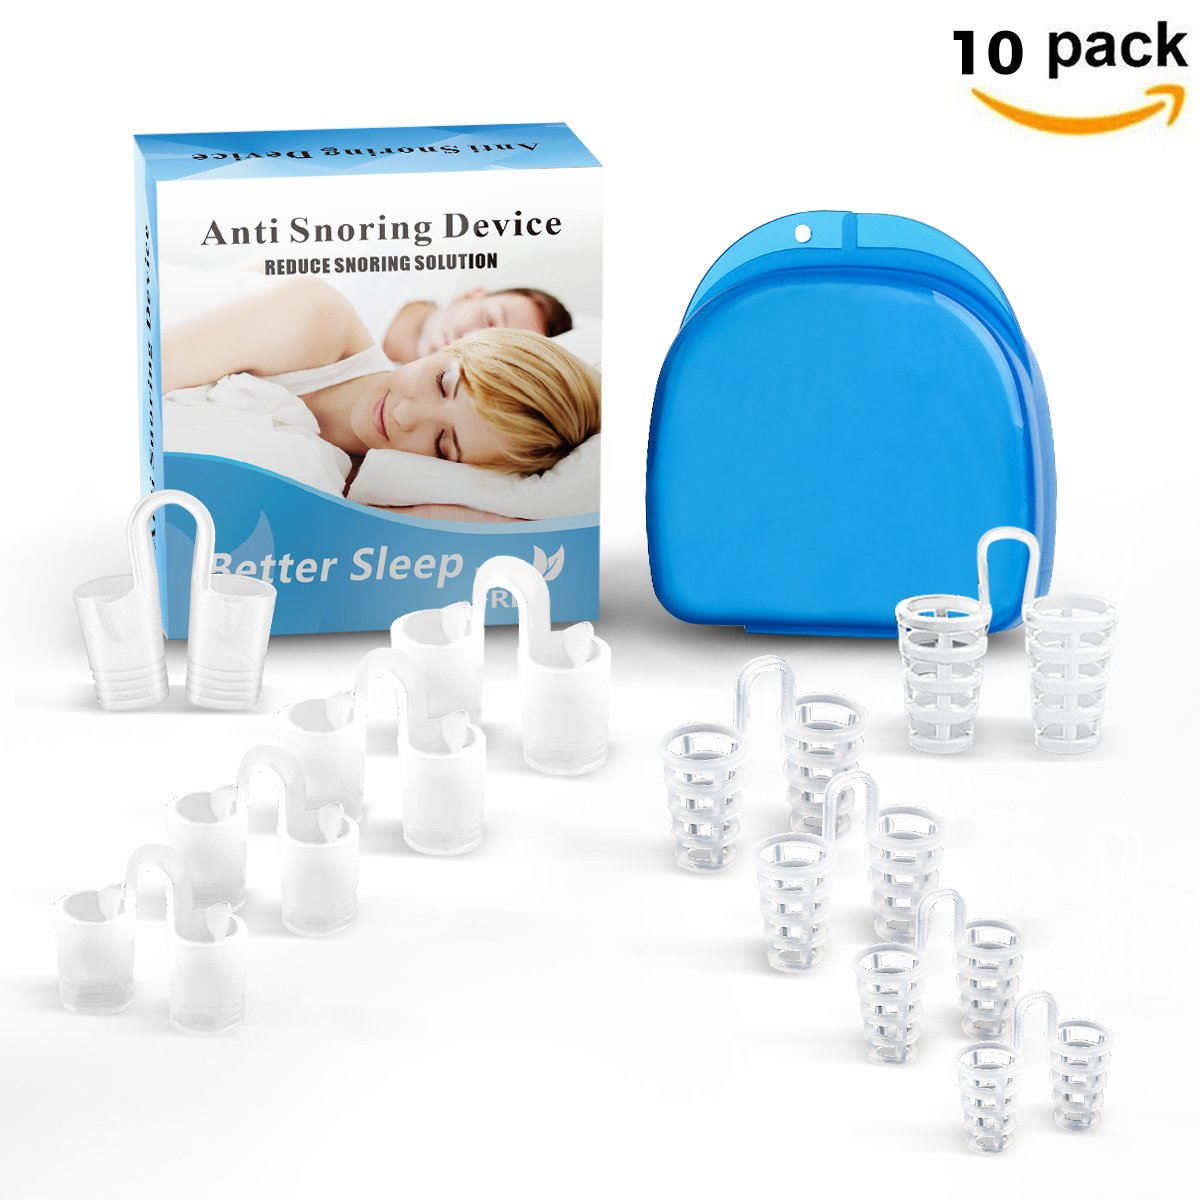 Stop Snoring Aids Buy Snoring Solution Anti Snoring Devices Nose Vents Nasal